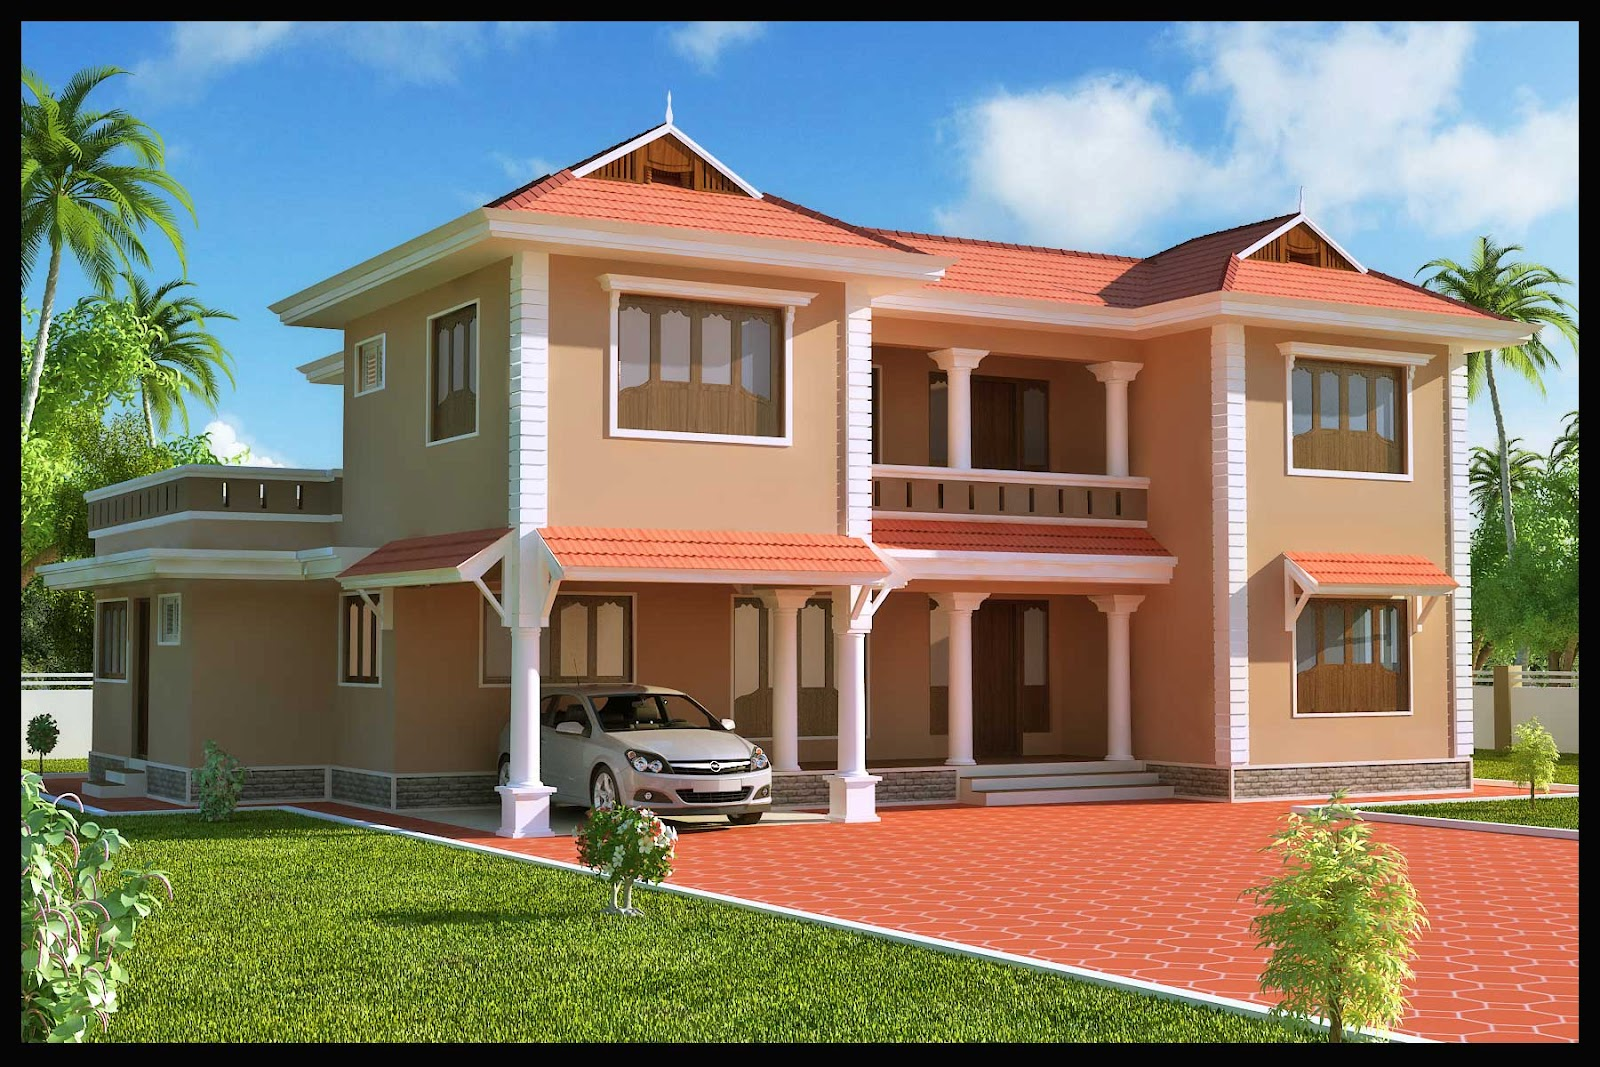 Duplex house plans designs indian duplex house